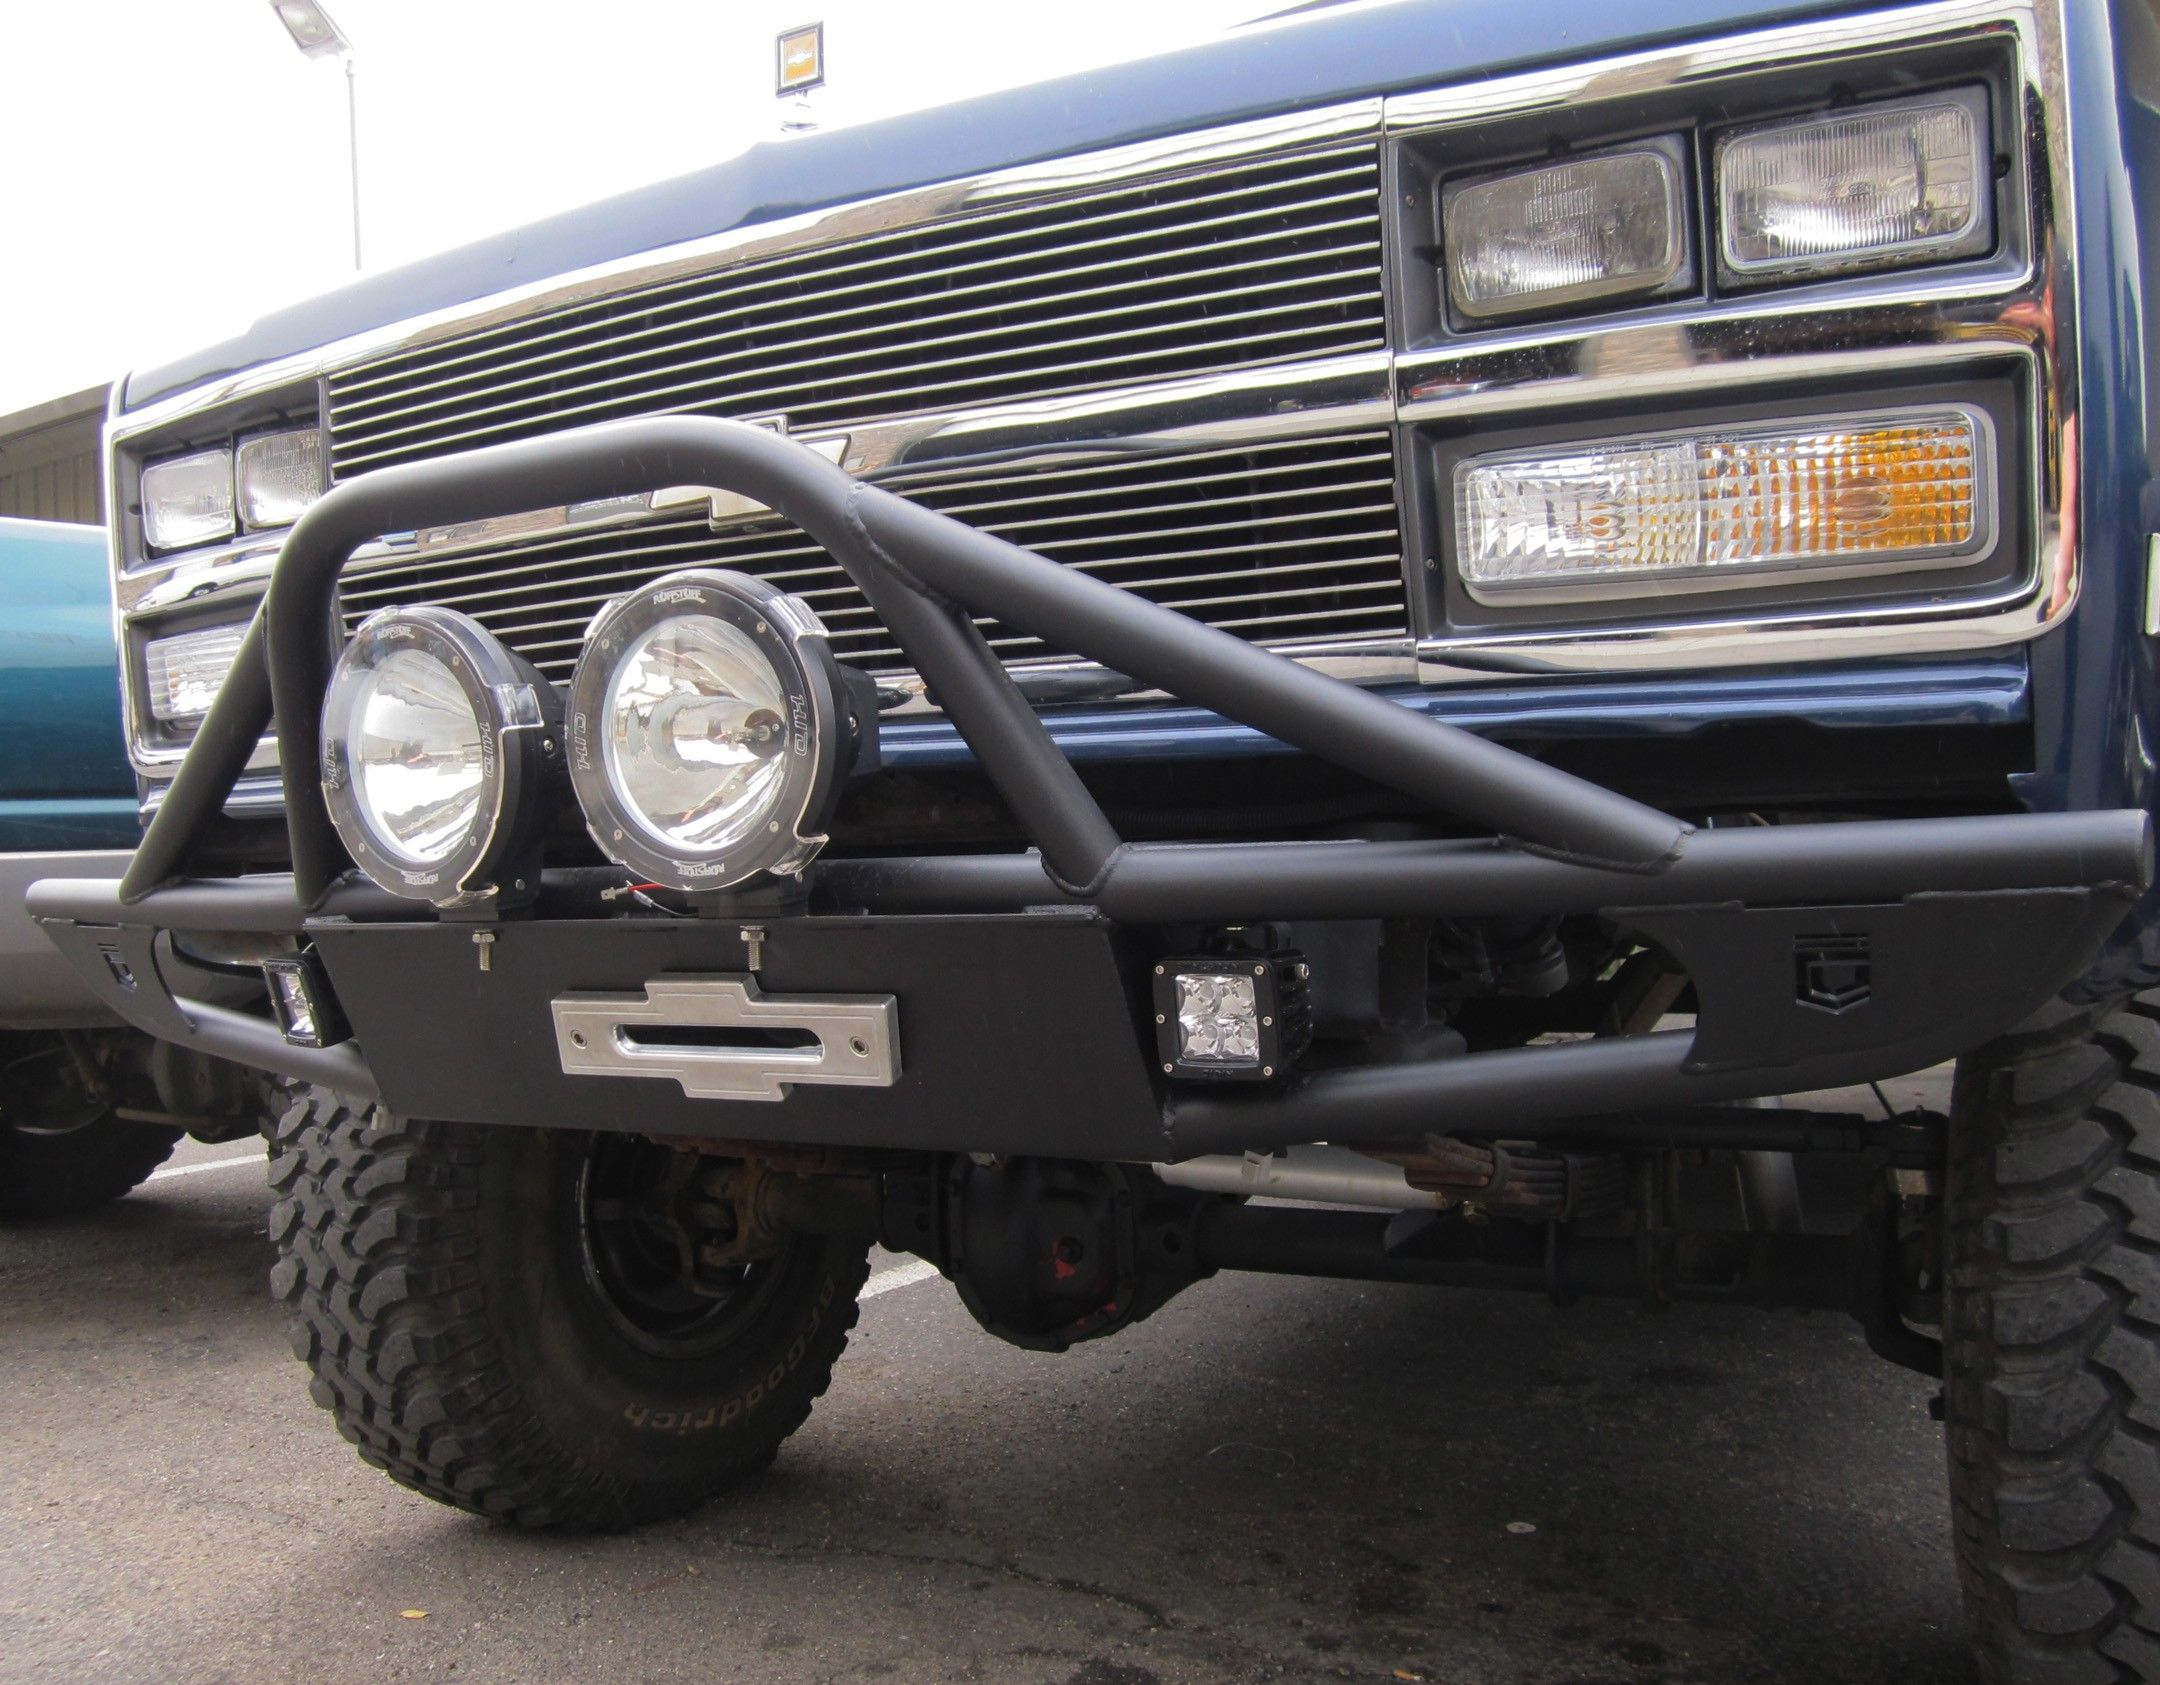 Chassis unlimited front tube winch bumper for your chevrolet or gmc blazer pick up truck suburban or crew cab truck all years models from bumper comes